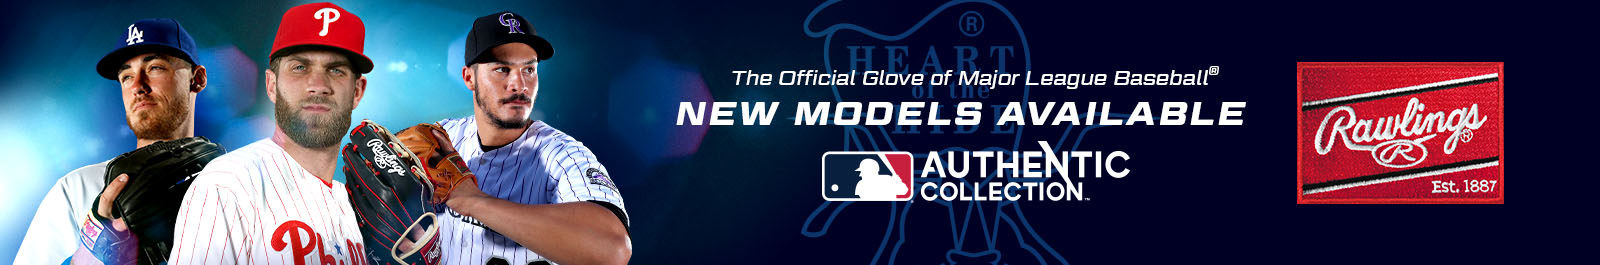 Rawlings Opening Day 2020 - New Glove Models